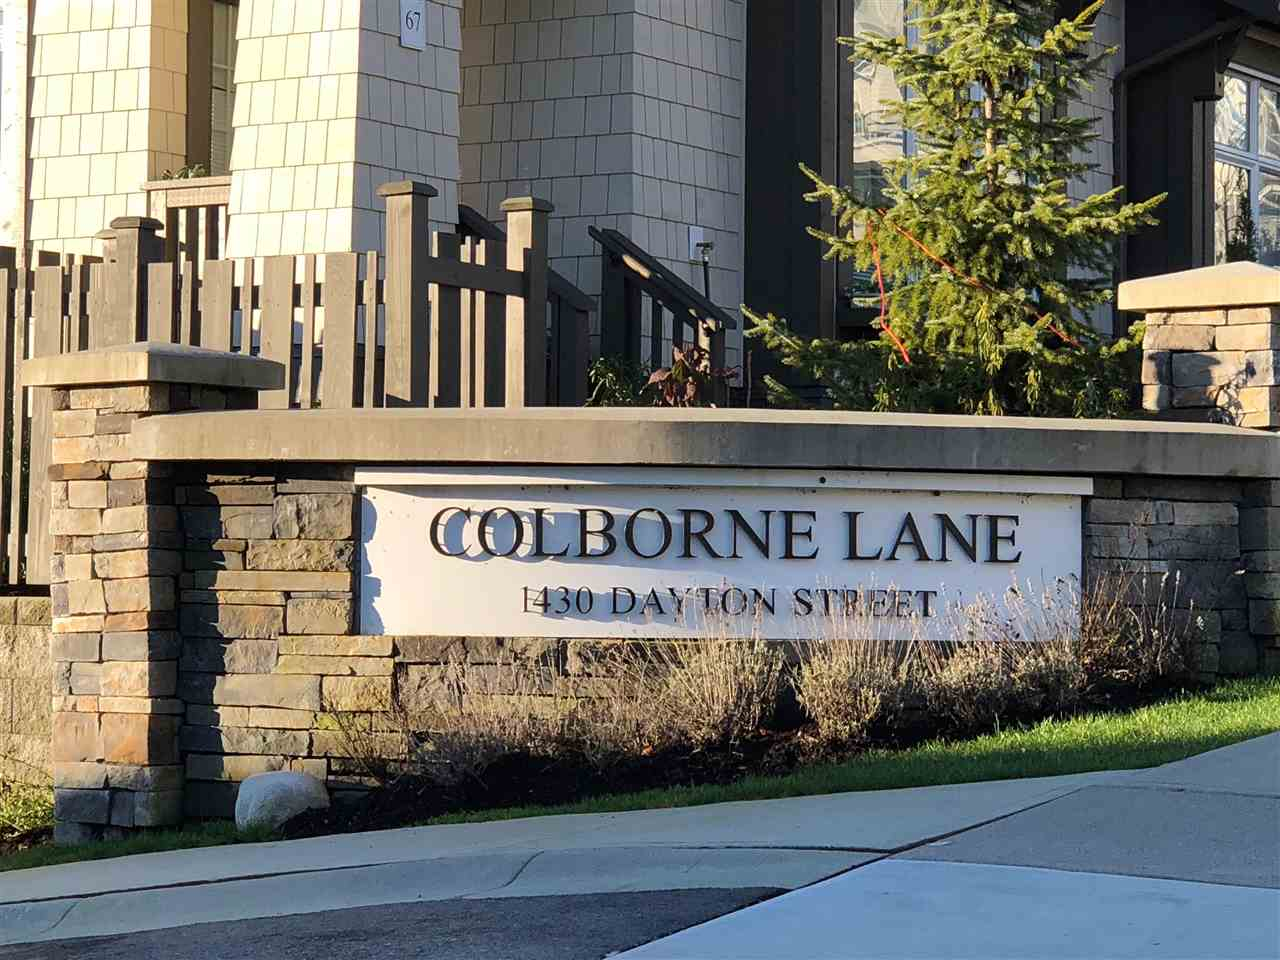 Colborne Lane by Polygon. Spacious duplex style townhouse backing onto your private yard facing greenbelt space. Open floor plan which is bright with clean finishing. Quartz counter tops, stainless steel appliances, wood laminate floor, extra high ceiling. Upstairs has 4 bedrooms with 5 piece master ensuite. Side by side double garage and visitor parking lot is right in front. Walking distance to parks, schools and transportation. This is your new home!